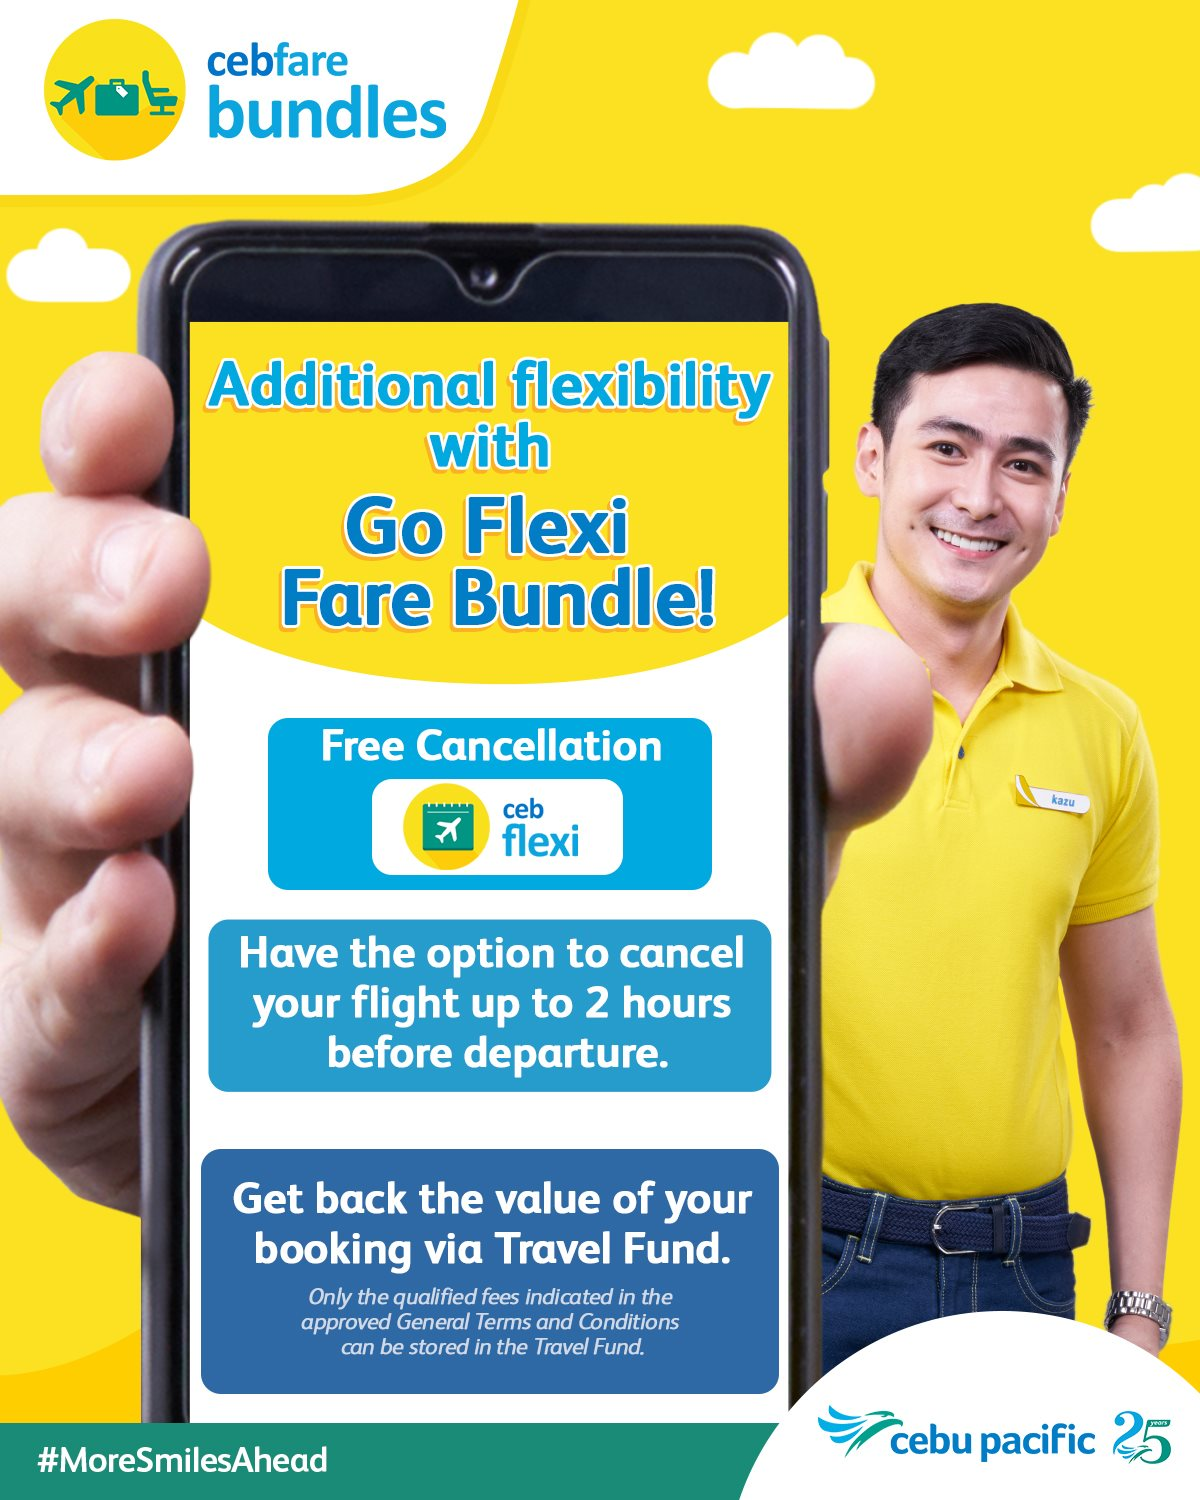 Cebu Pacific introduces new and improved CEB Flexi product